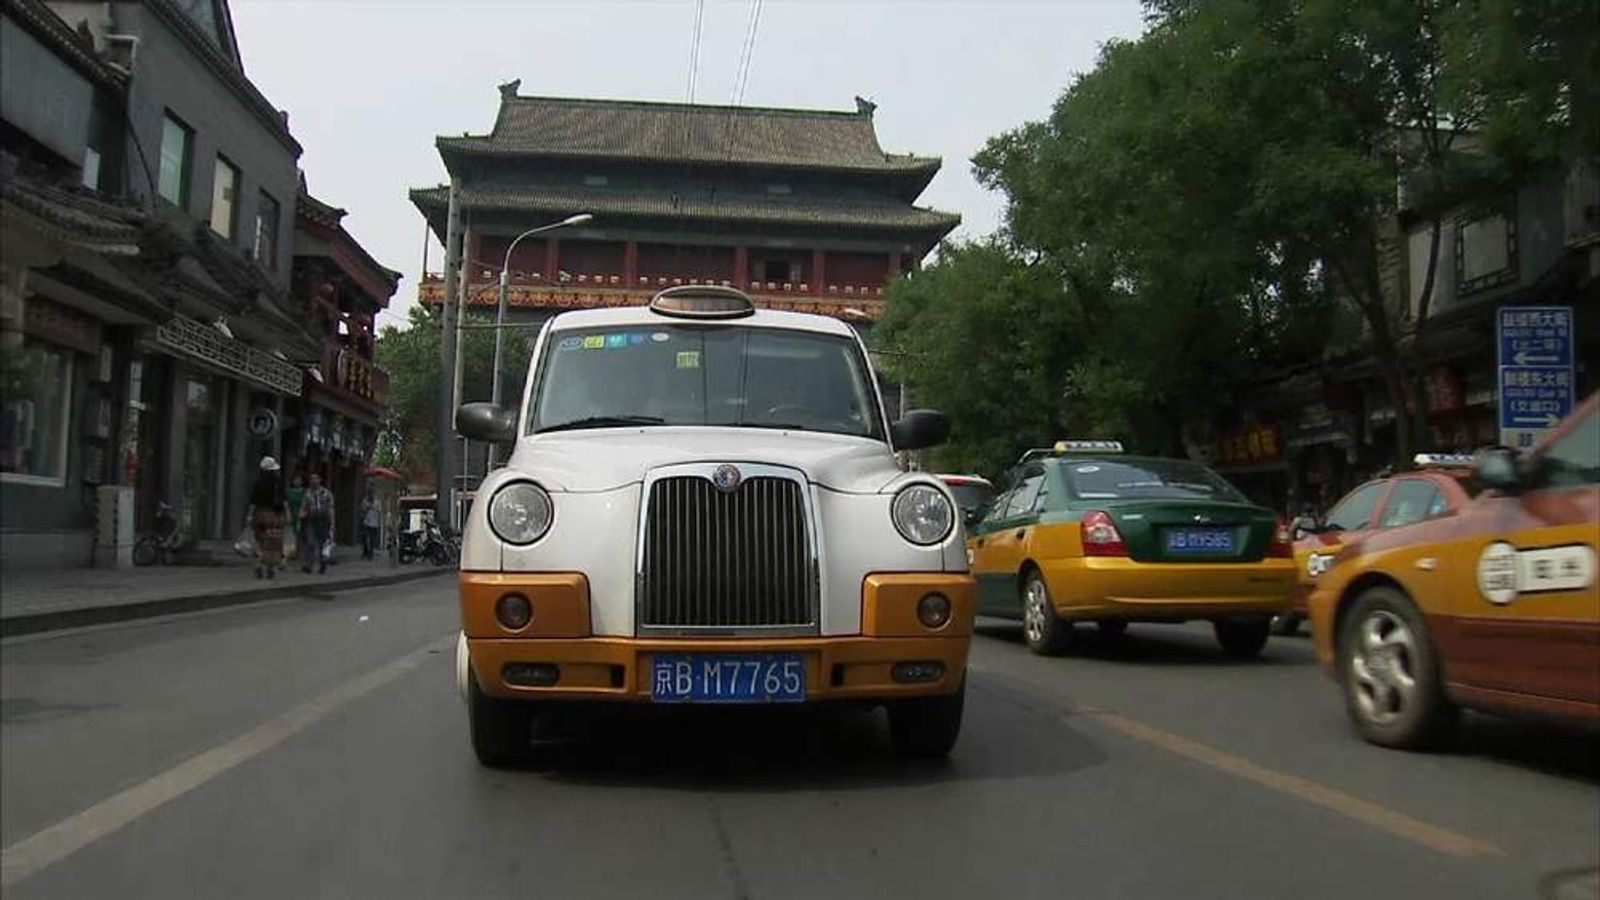 London cab in Beijing